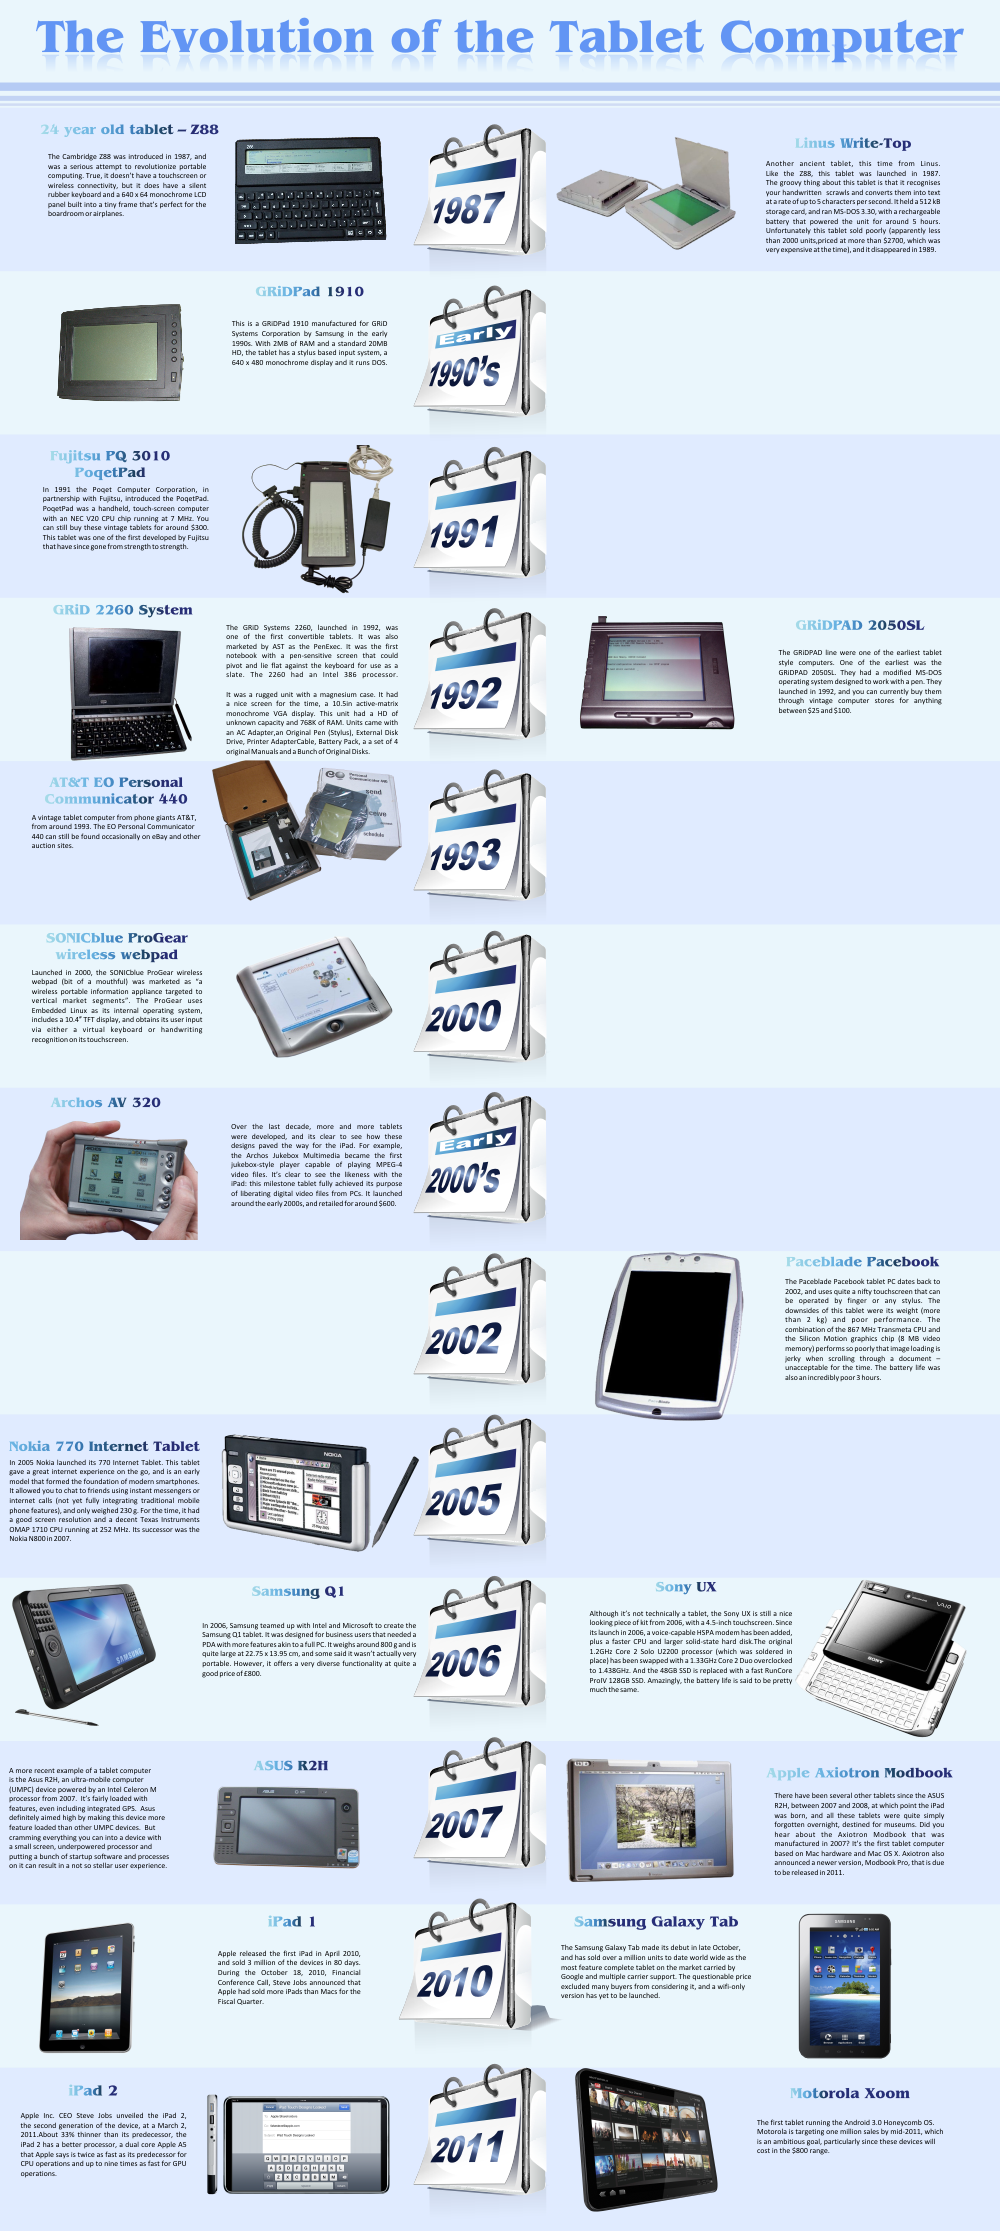 the emergence of the computer age and the evolution of computers over the years A brief history of computers that changed the world  a number of improvements were made to the computer over the years, the most important of which was likely the .